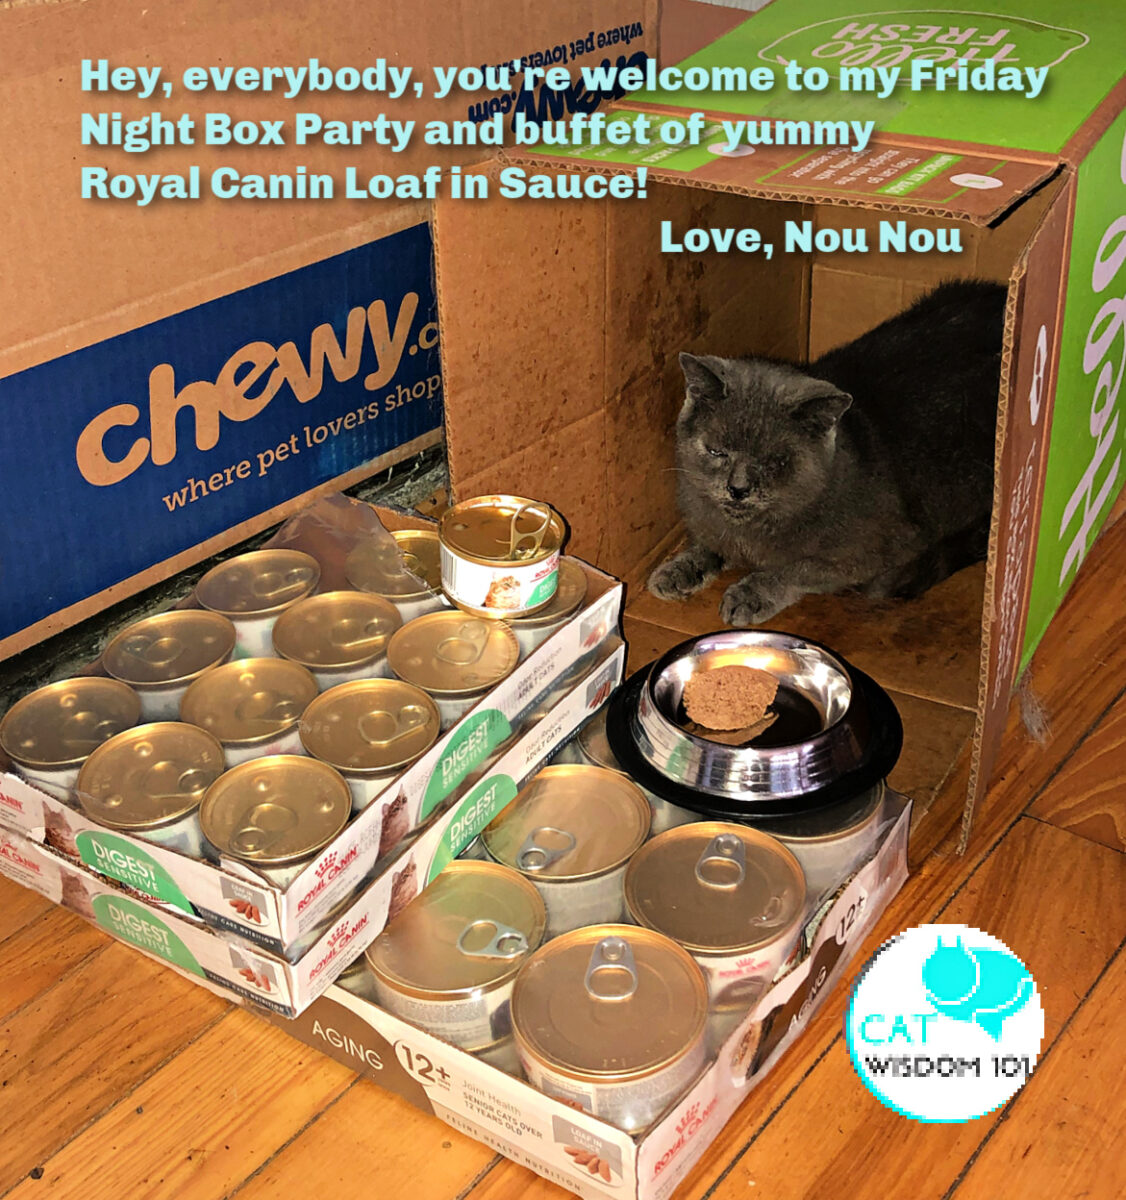 friday night box party Chewy Royal Can